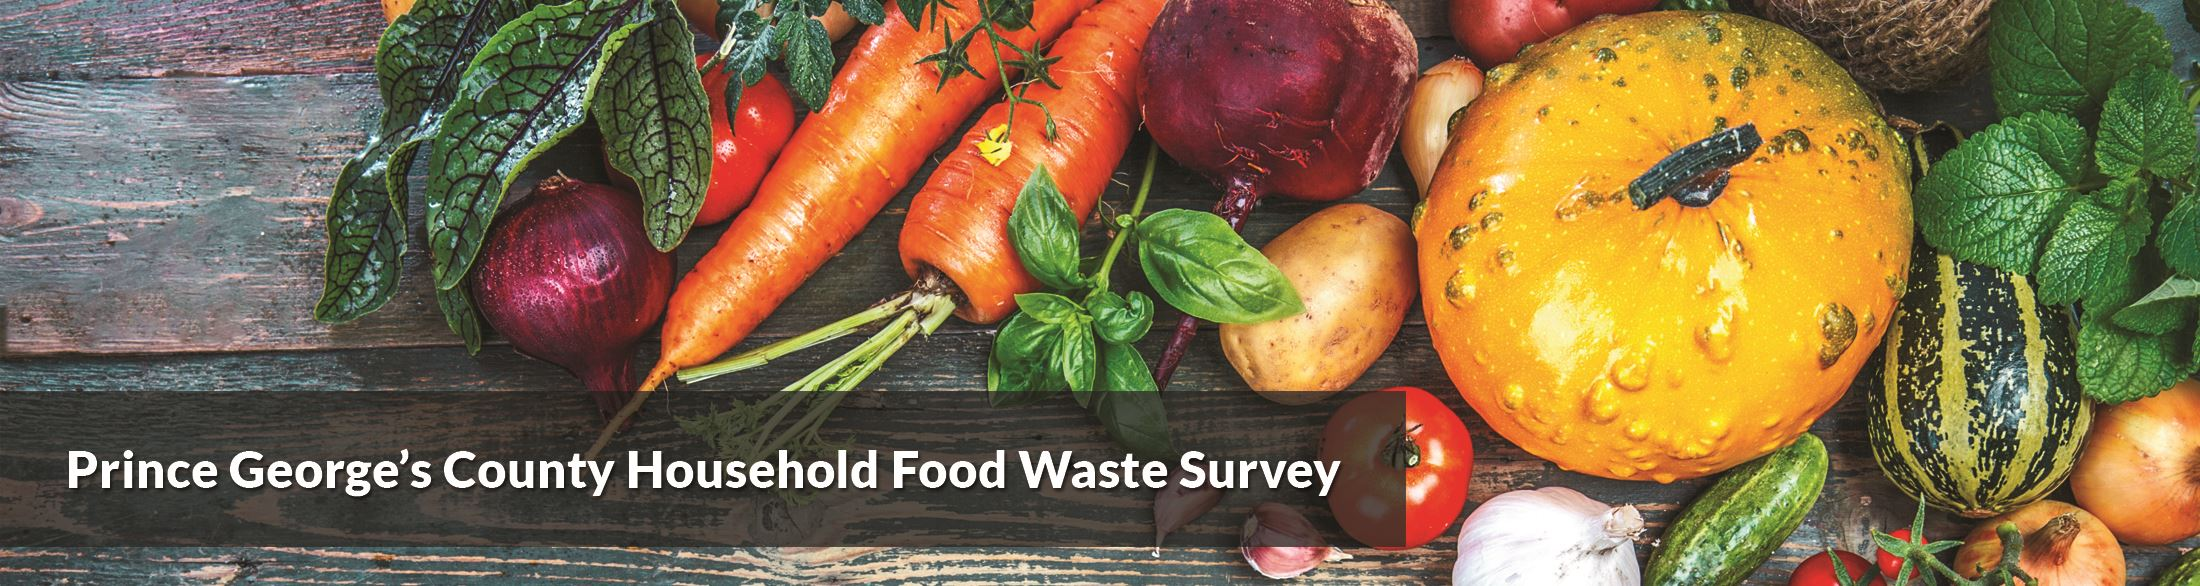 Prince George's County Household Food Waste Survey